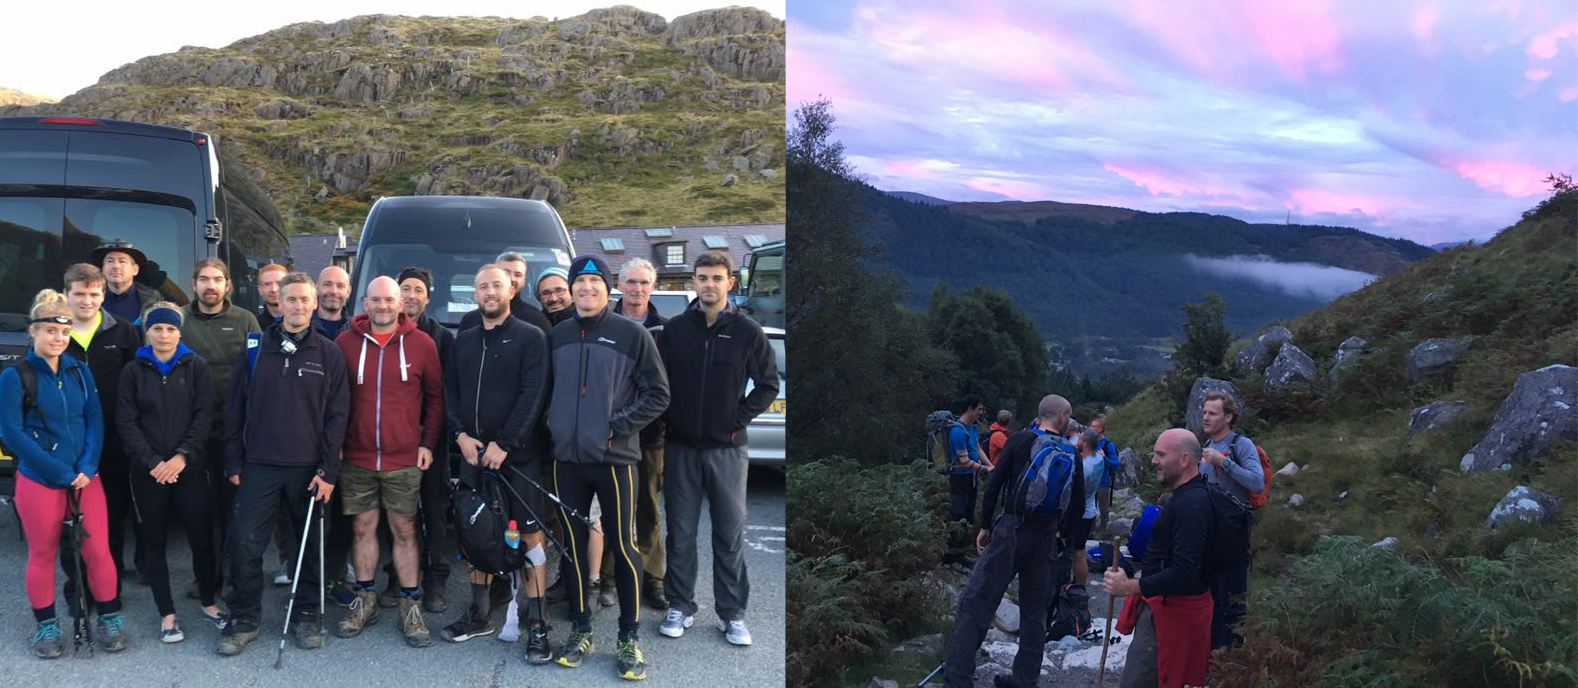 We organised a National Three Peaks charity event for 20 people which included everything from fitness preperation, travel, accomodation, mountain guides, fundraising events in the run up to the main event and much more